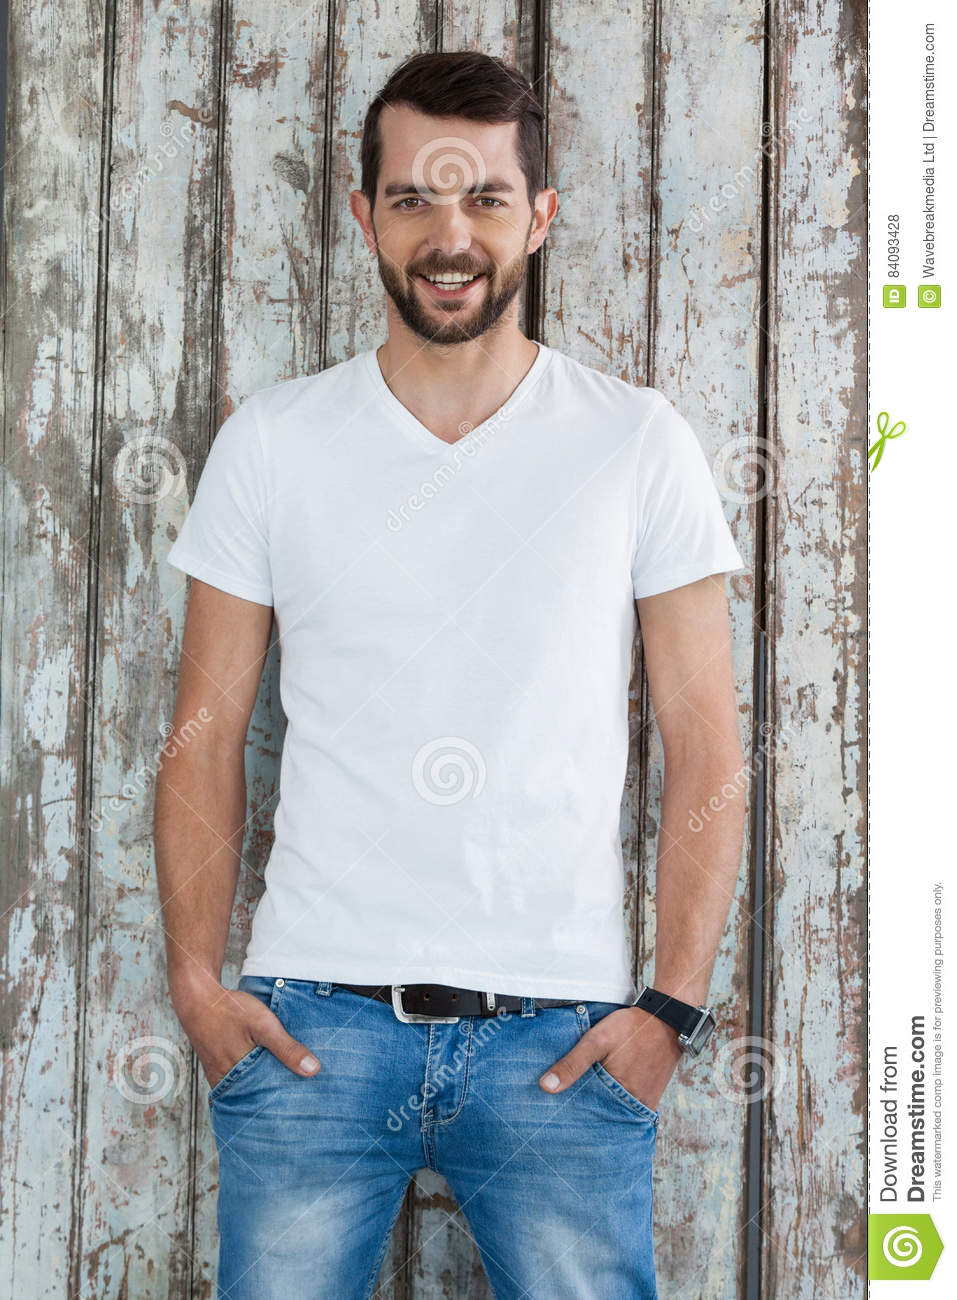 White t shirt and blue jeans - Handsome Man In White T Shirt And Blue Jeans